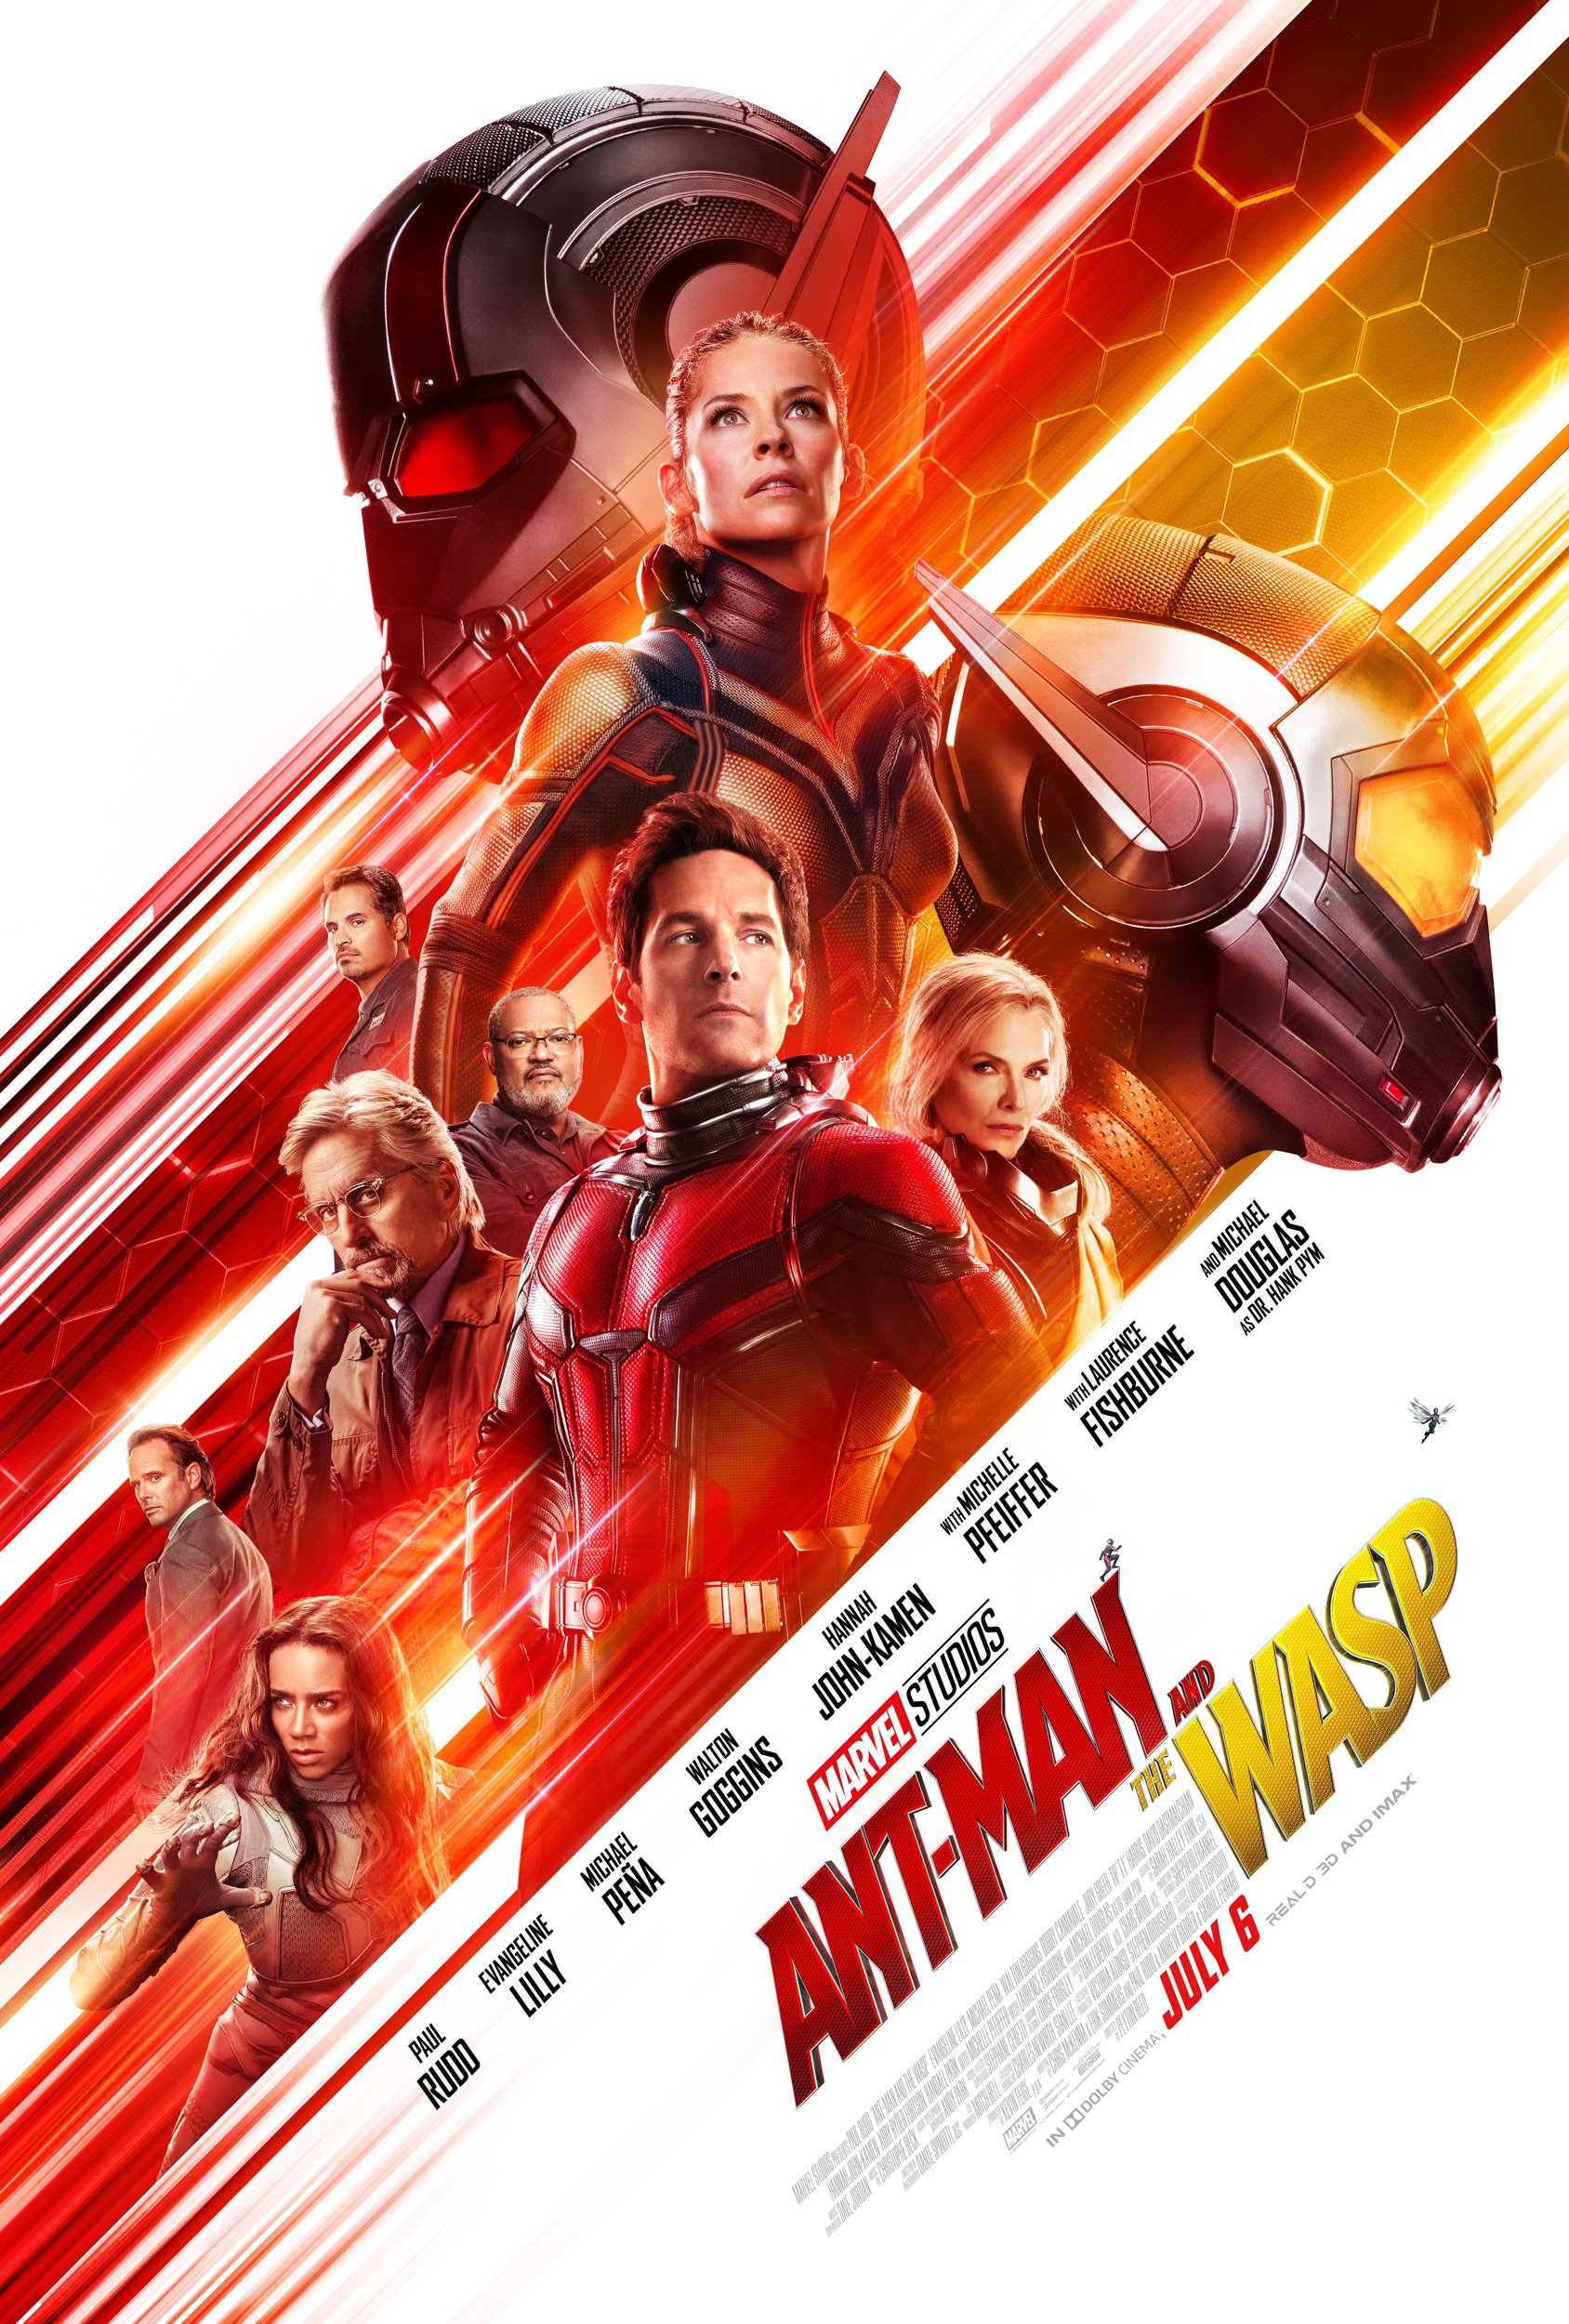 [PG-13] Ant-Man and the Wasp (2018) Dual Audio Blu-Ray - 480P | 720P - x264 - 400MB | 1.1GB - Download & Watch Online  Movie Poster - mlsbd